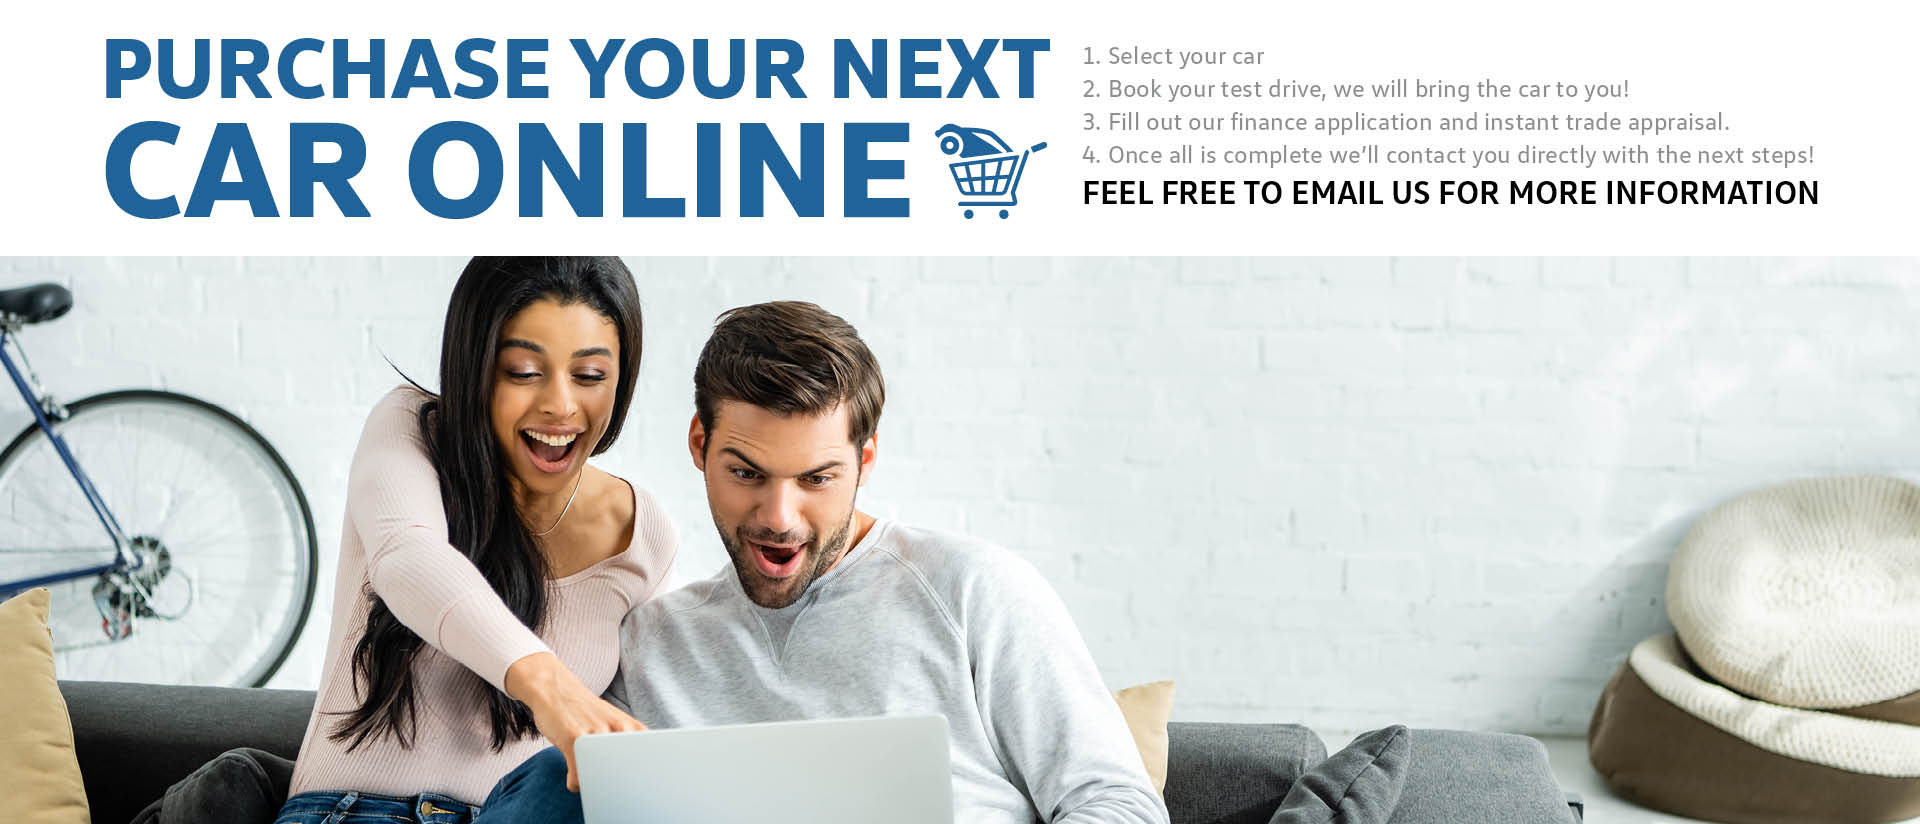 Purchase Your Car Online